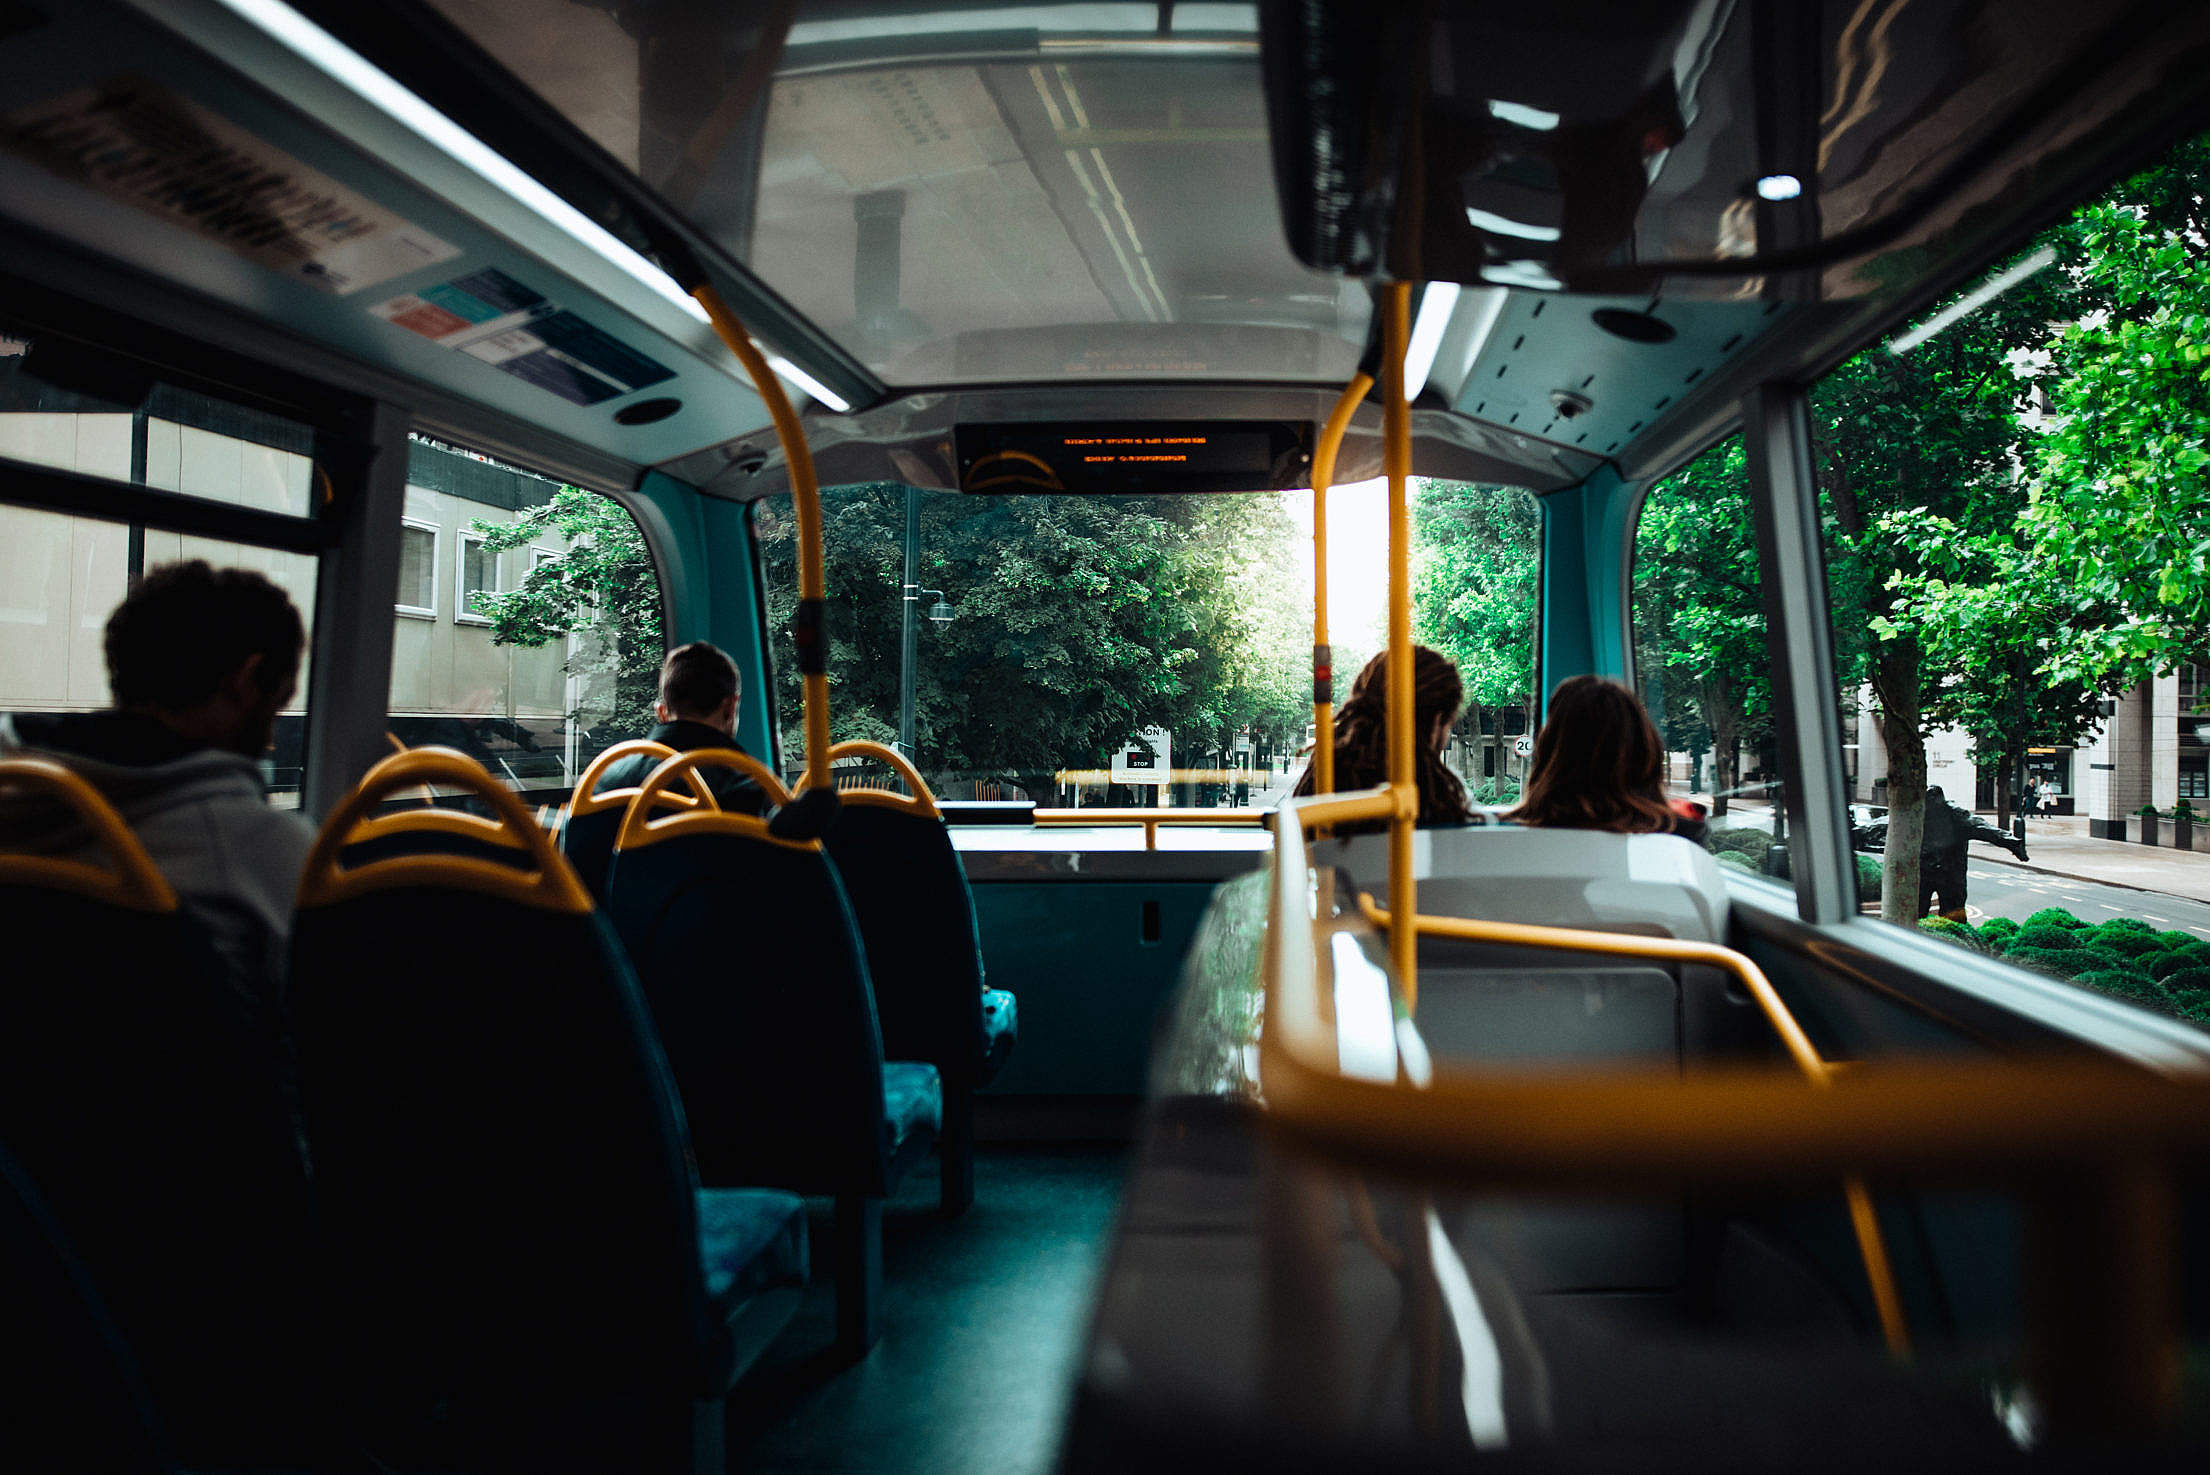 Morning Bus Ride to the Work Free Stock Photo